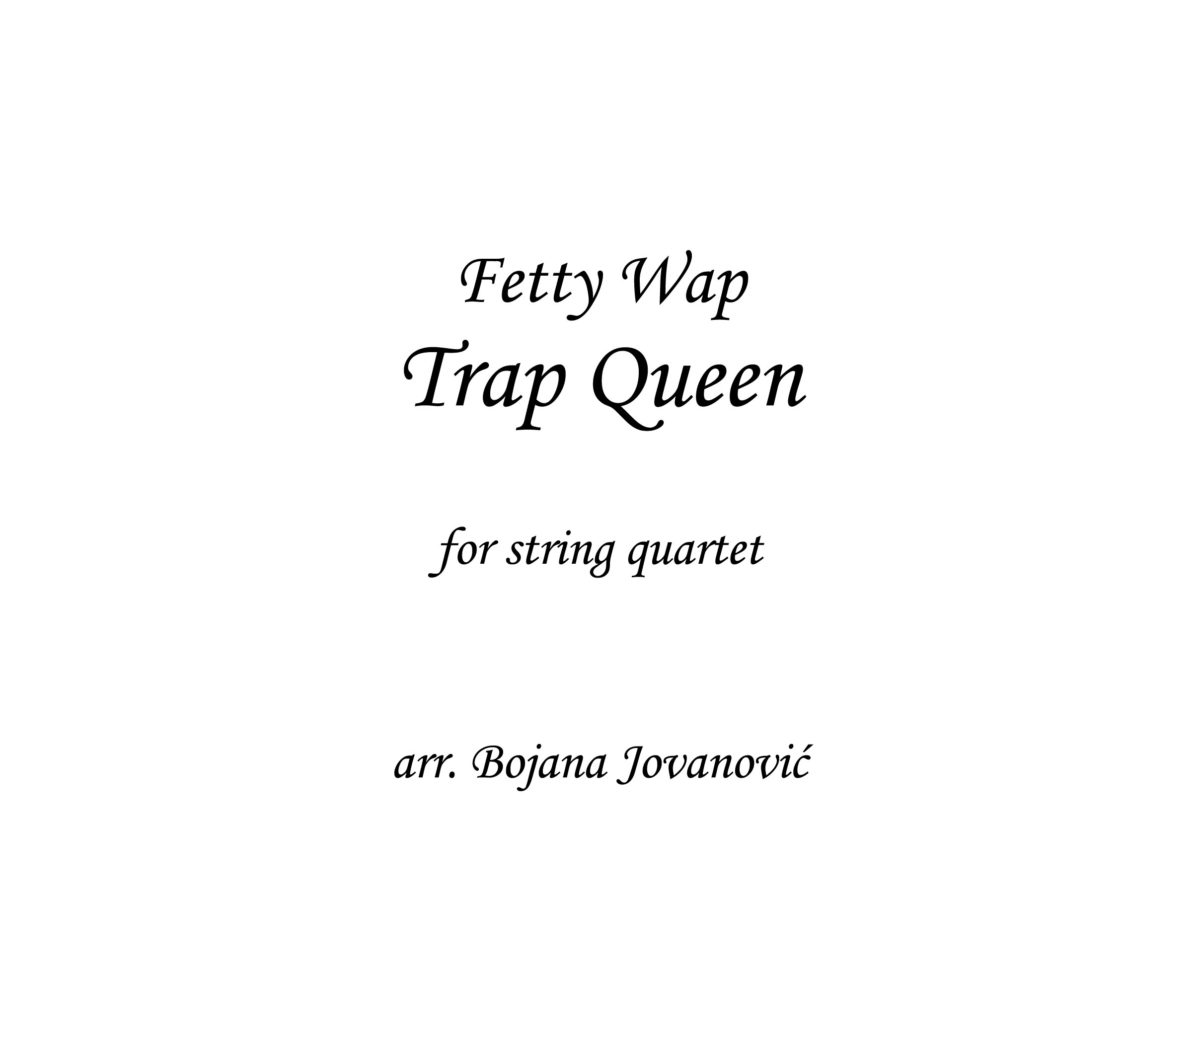 Trap Queen Fetty Wap Sheet music